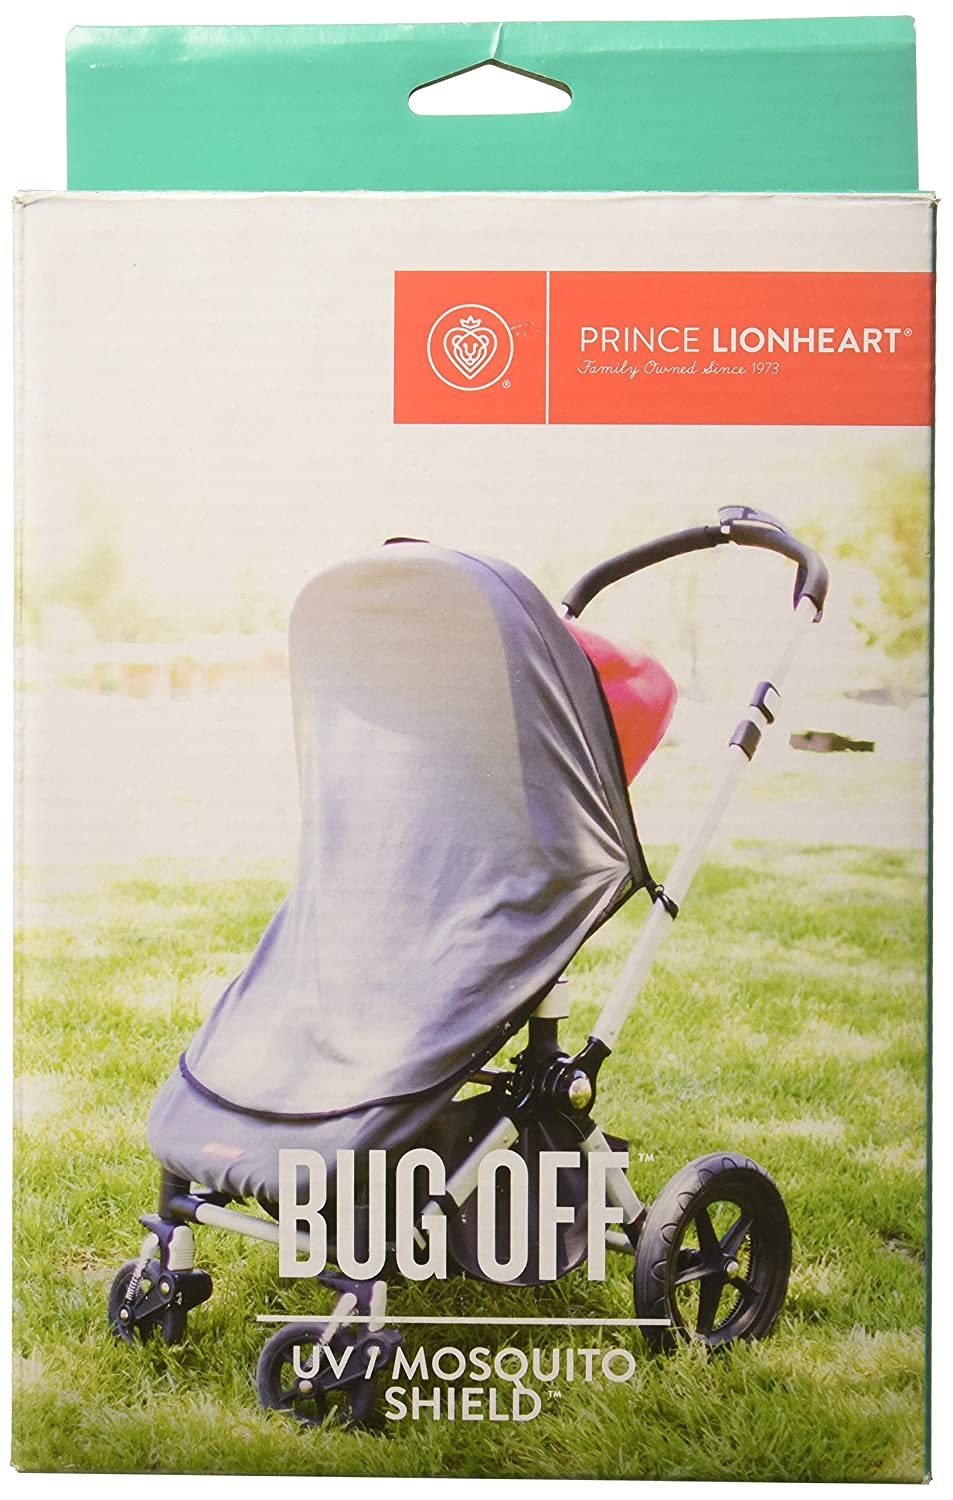 Prince Lionheart Stroller/Car Seat UV/Sleep/Insect Shield 0357